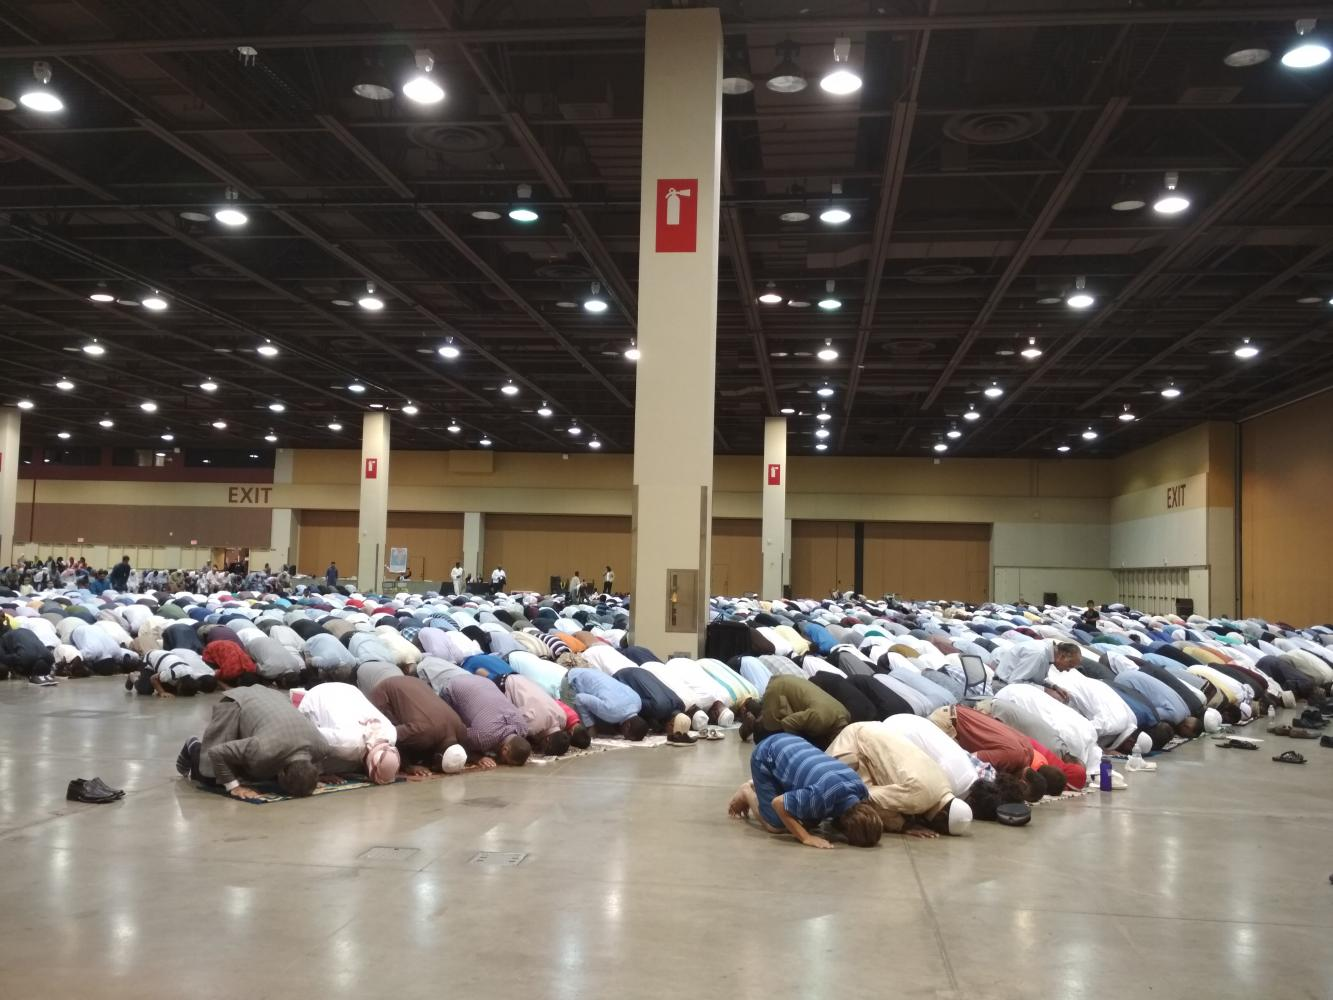 The Eid prayer of Muslims at the Phoenix Convention Center